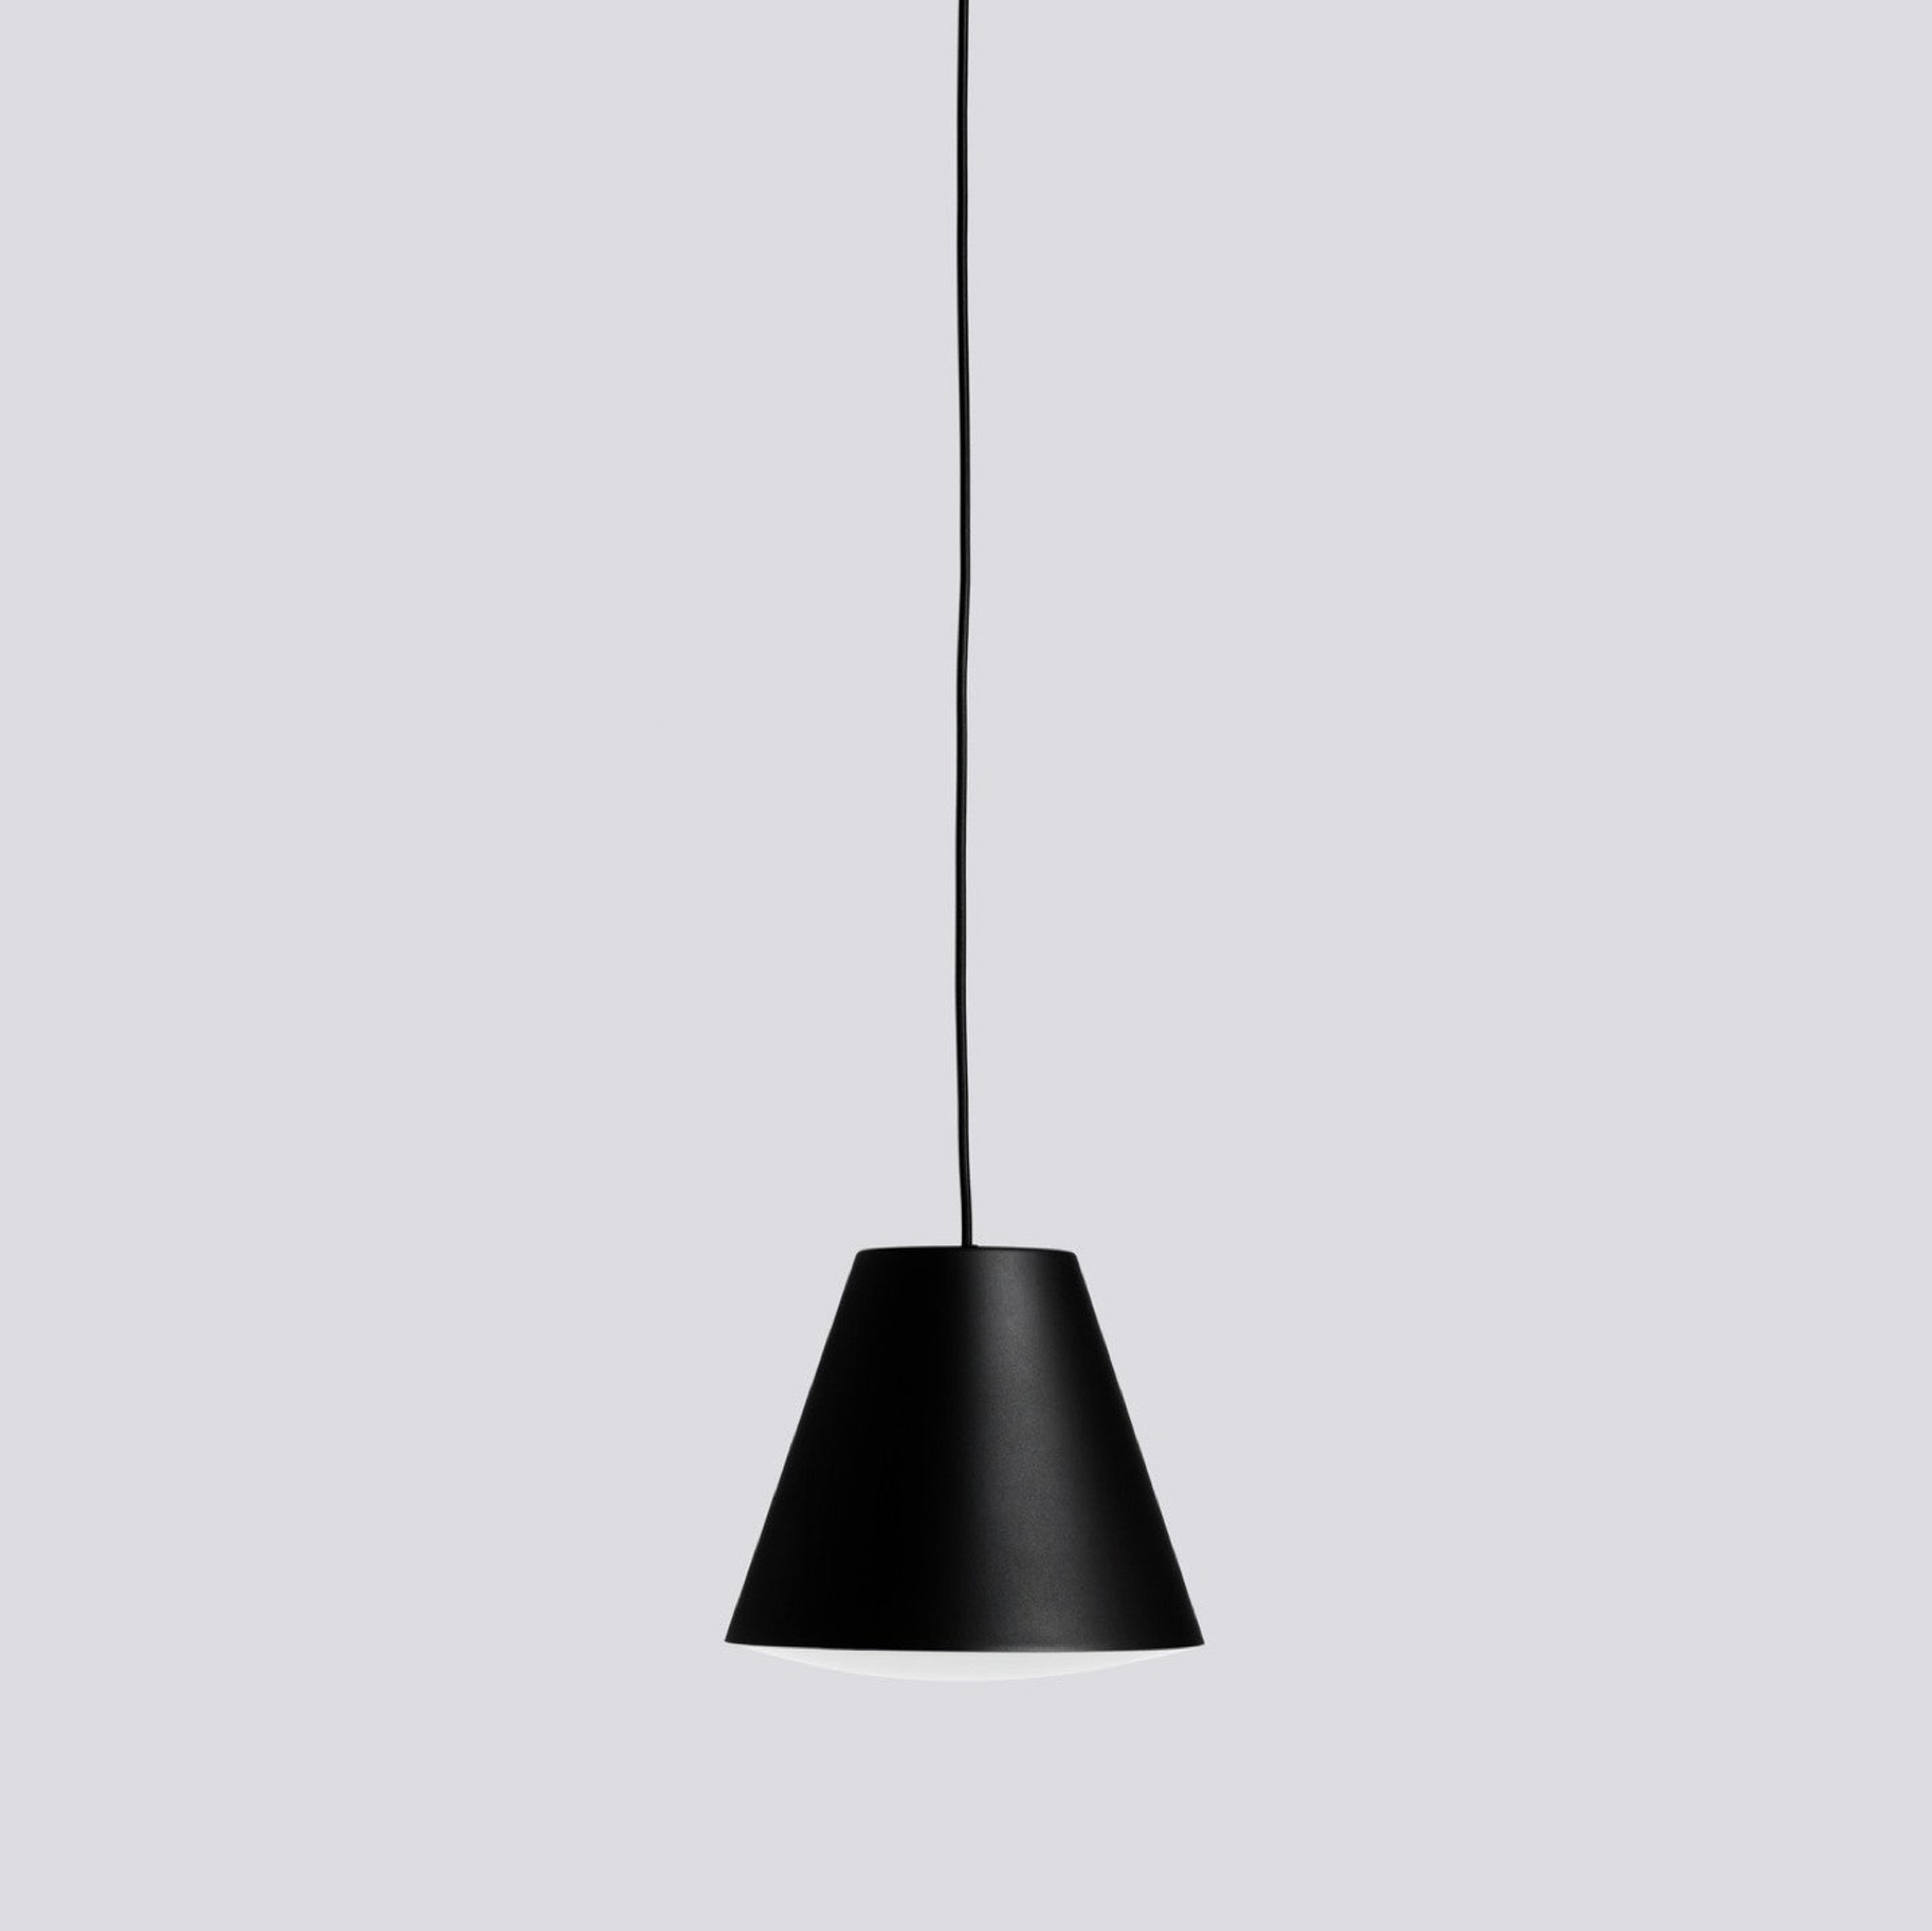 Sinker Pendant Light by Hay